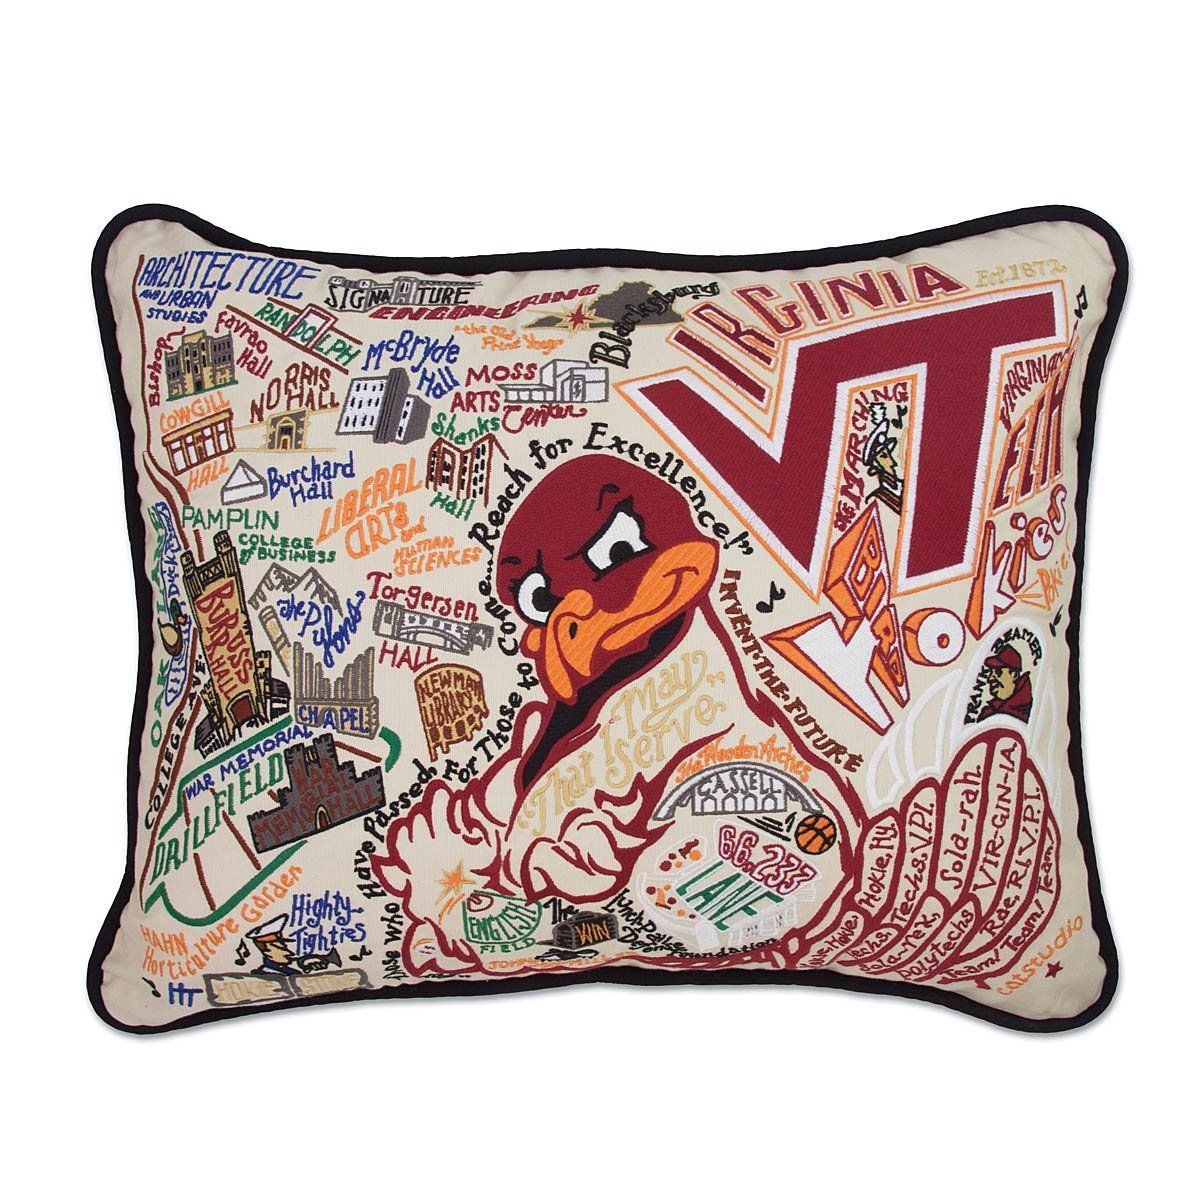 Virginia tech, Virginia tech hokies, Pillows